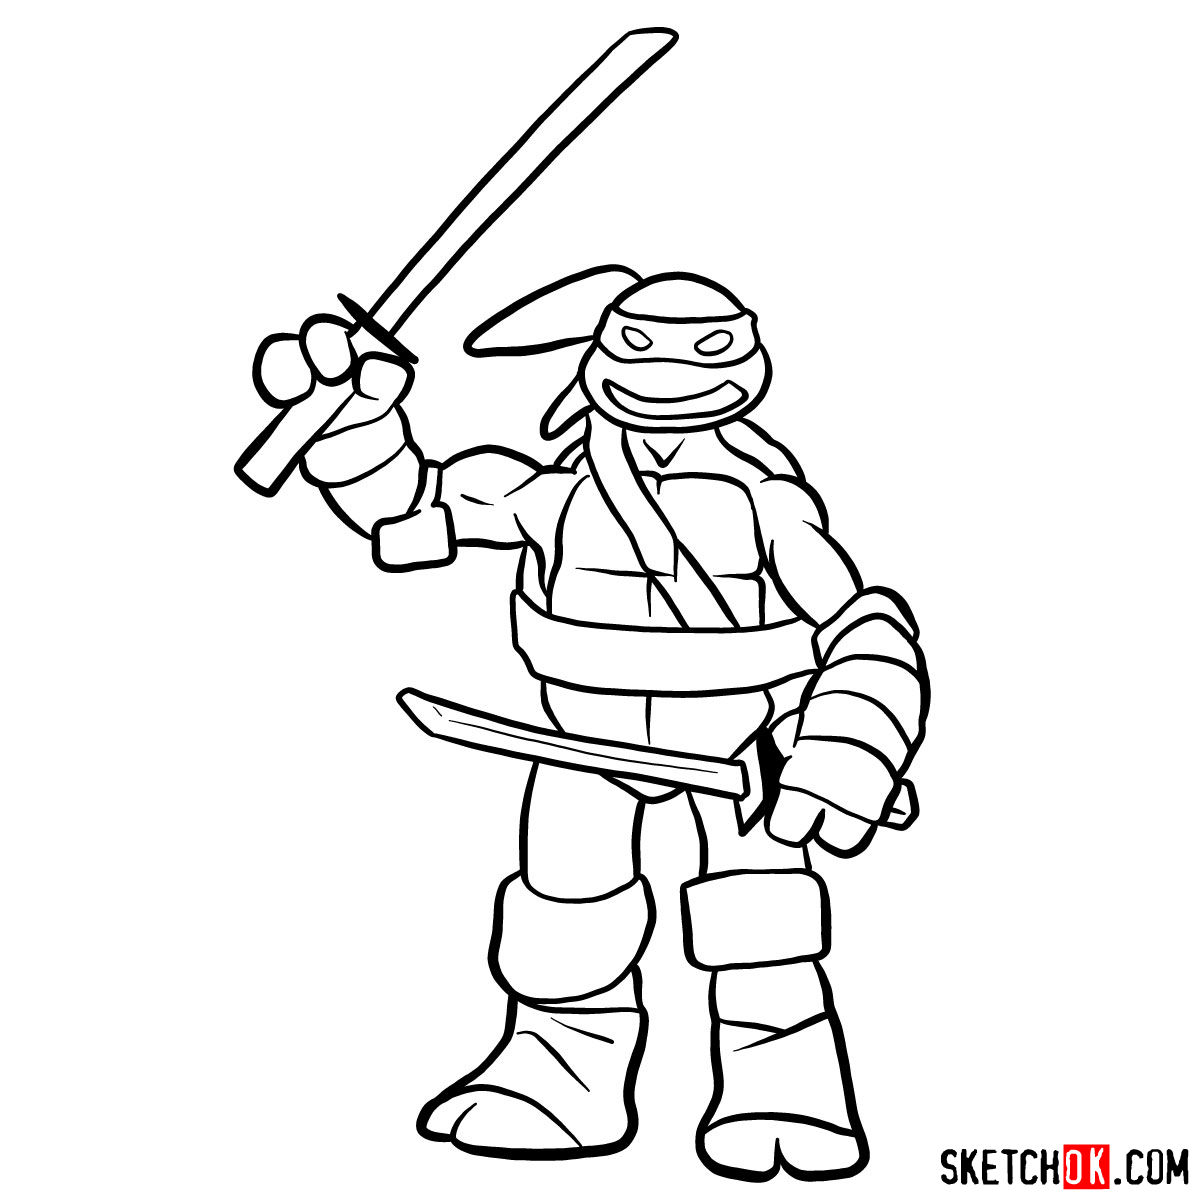 How to draw angry Leonardo toy | Ninja Turtles